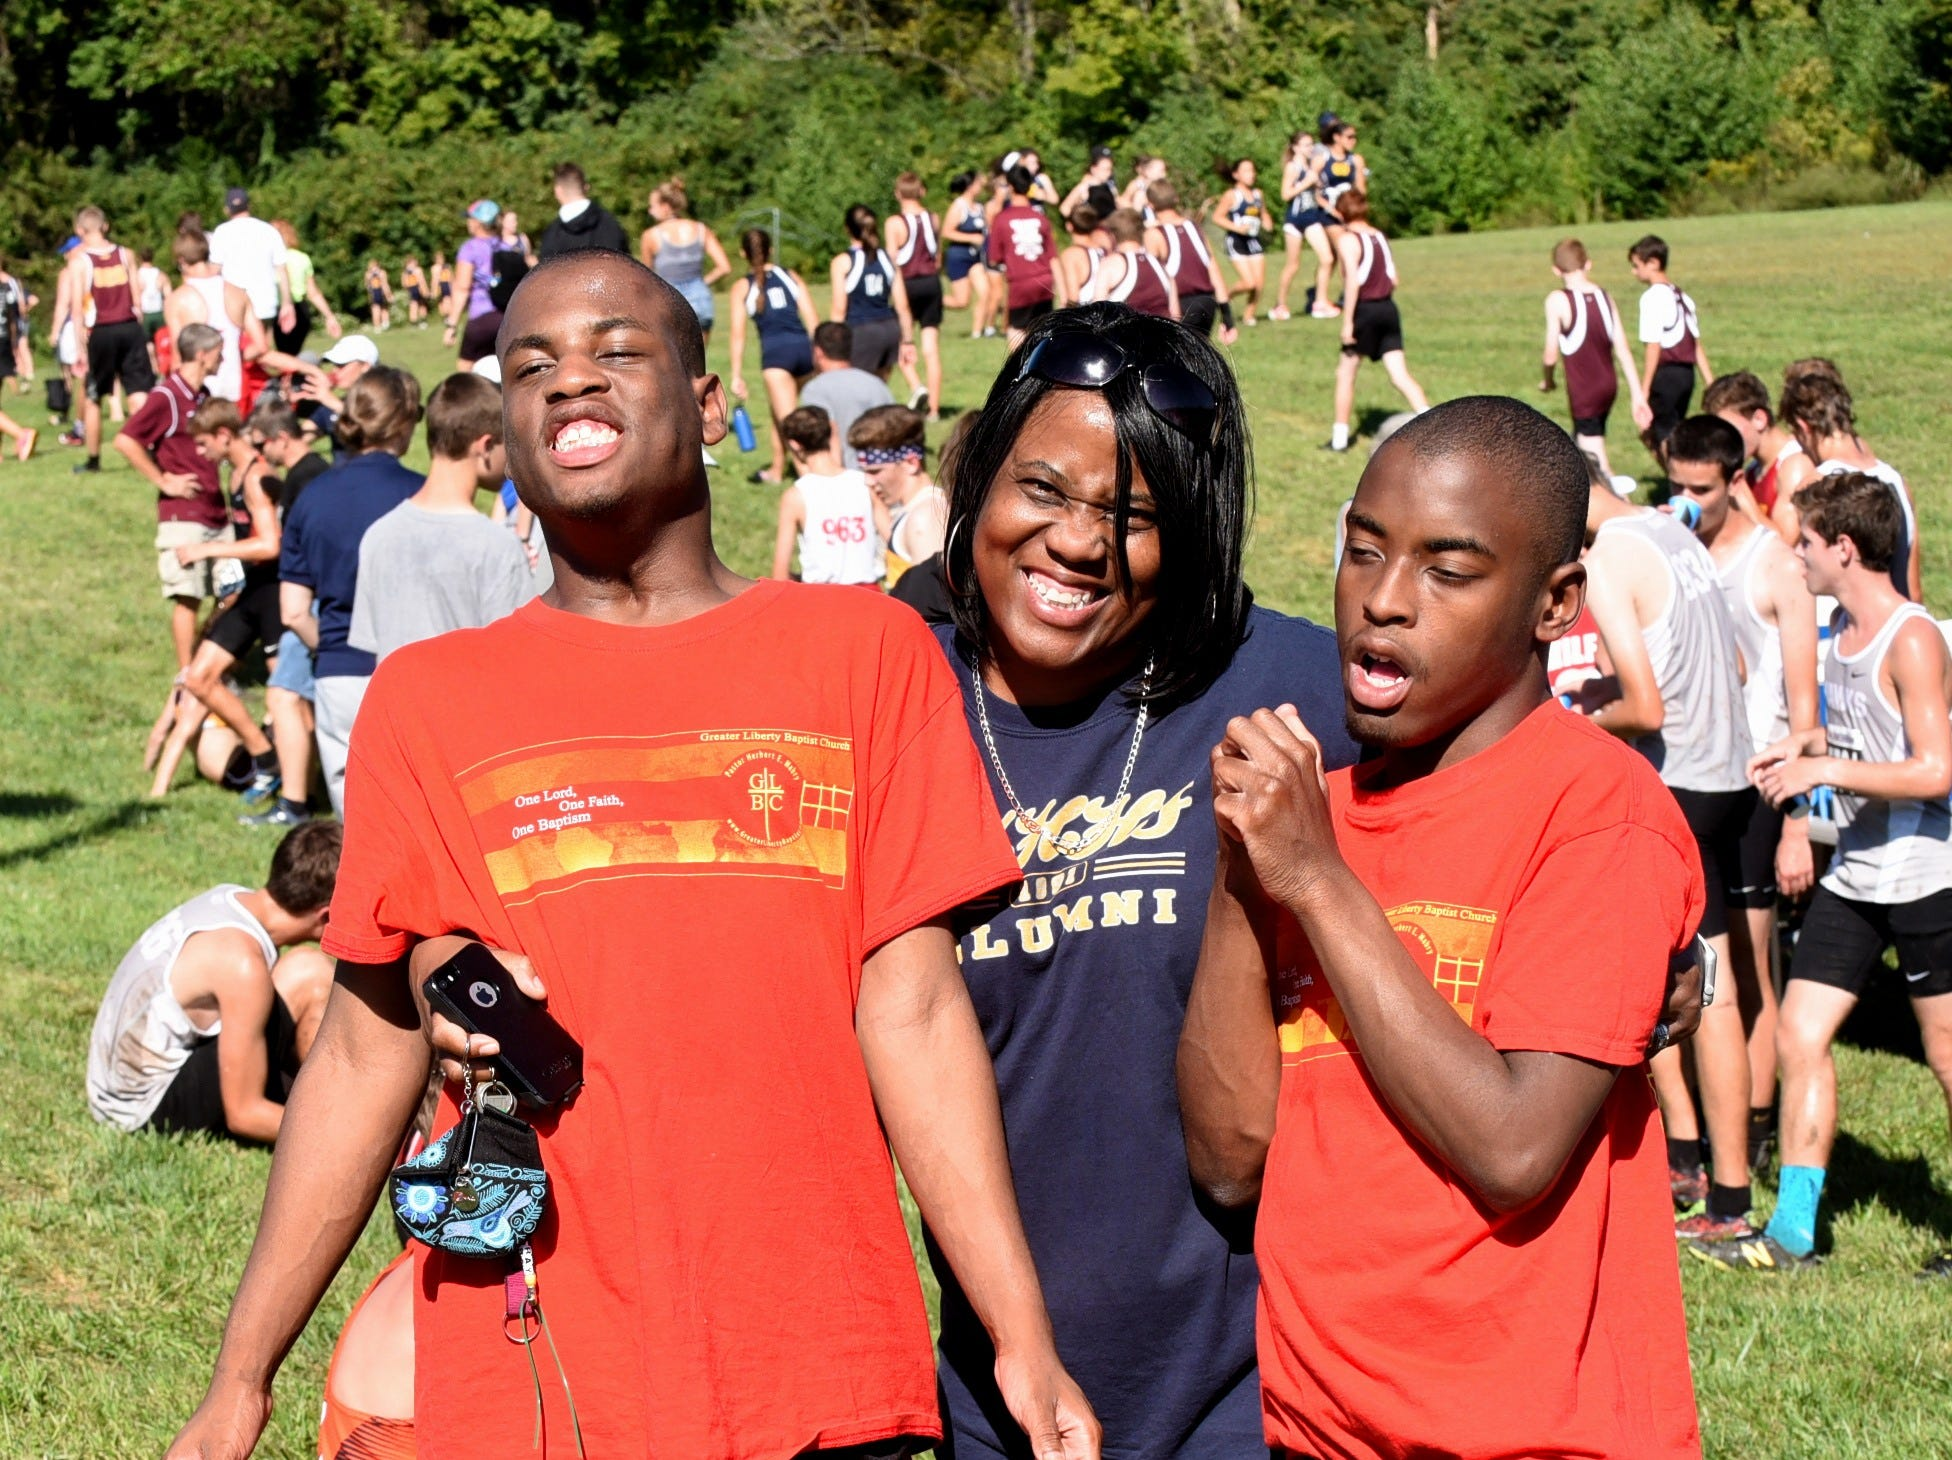 Fans from Walnut Hills celebrate their team's fifth-place finish in the boys varsity 5K race at the 2018 Milford Cross Country Invitational, Sept. 15, 2018.